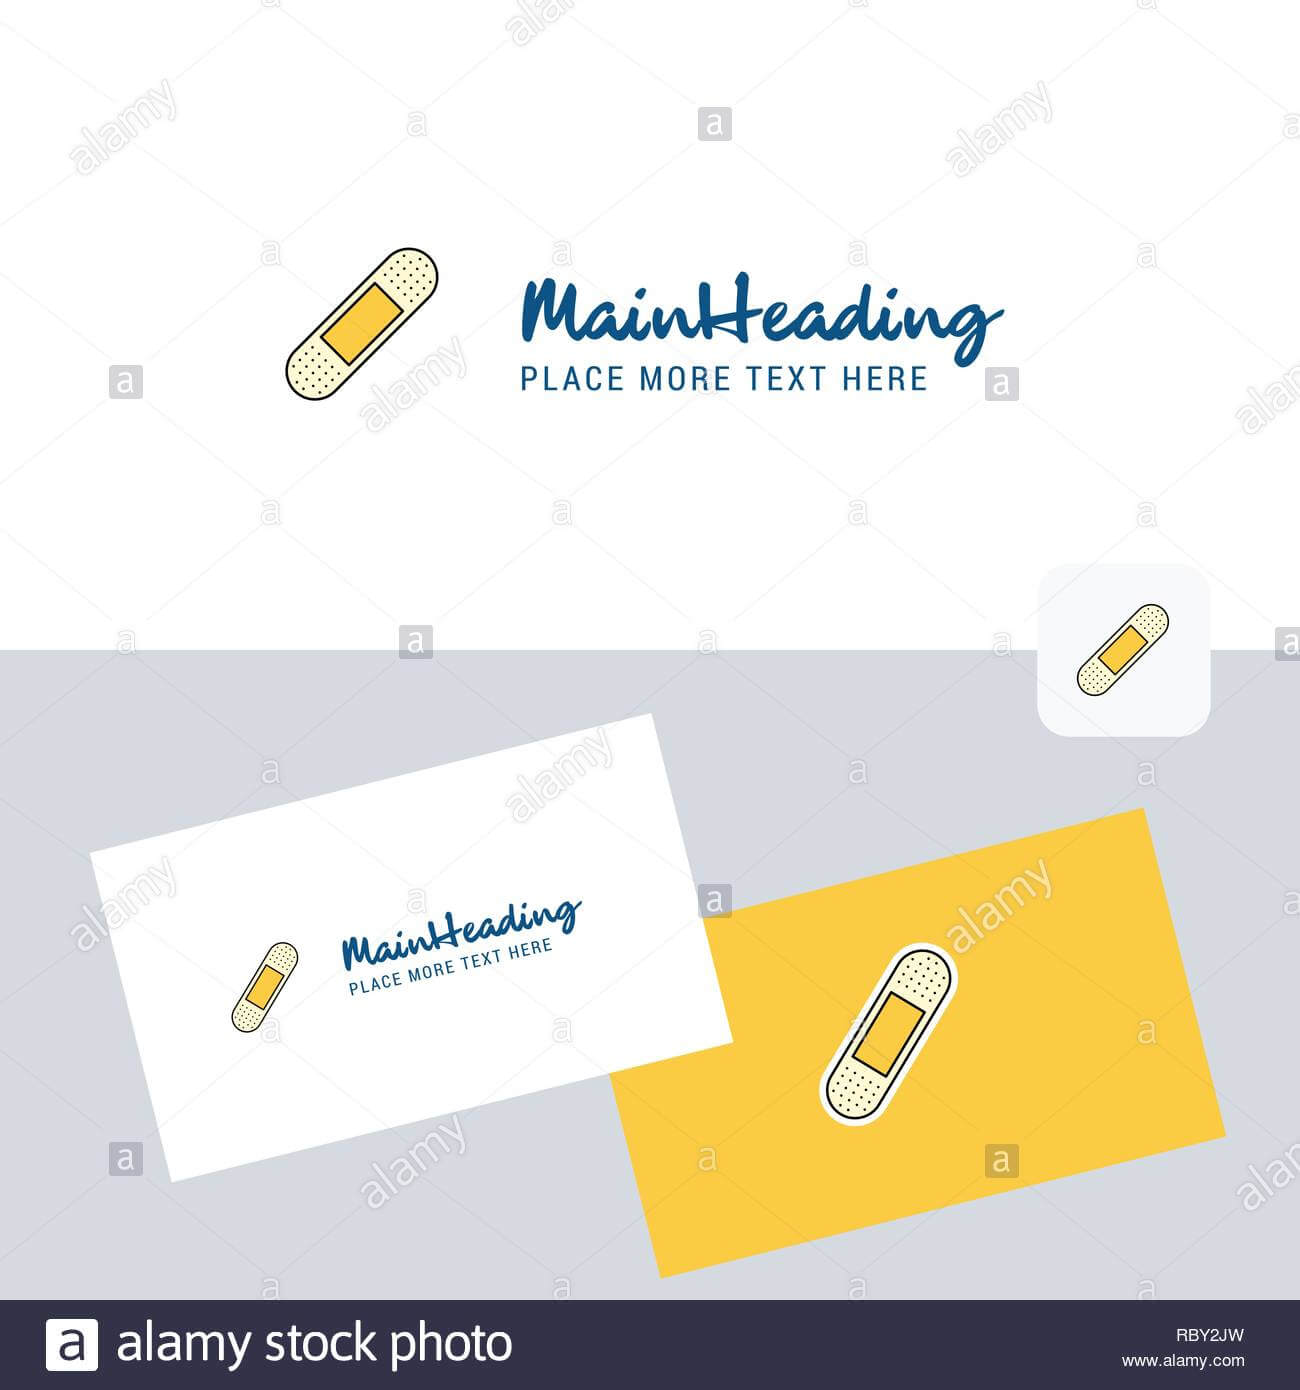 Plaster Vector Logotype With Business Card Template. Elegant Regarding Plastering Business Cards Templates